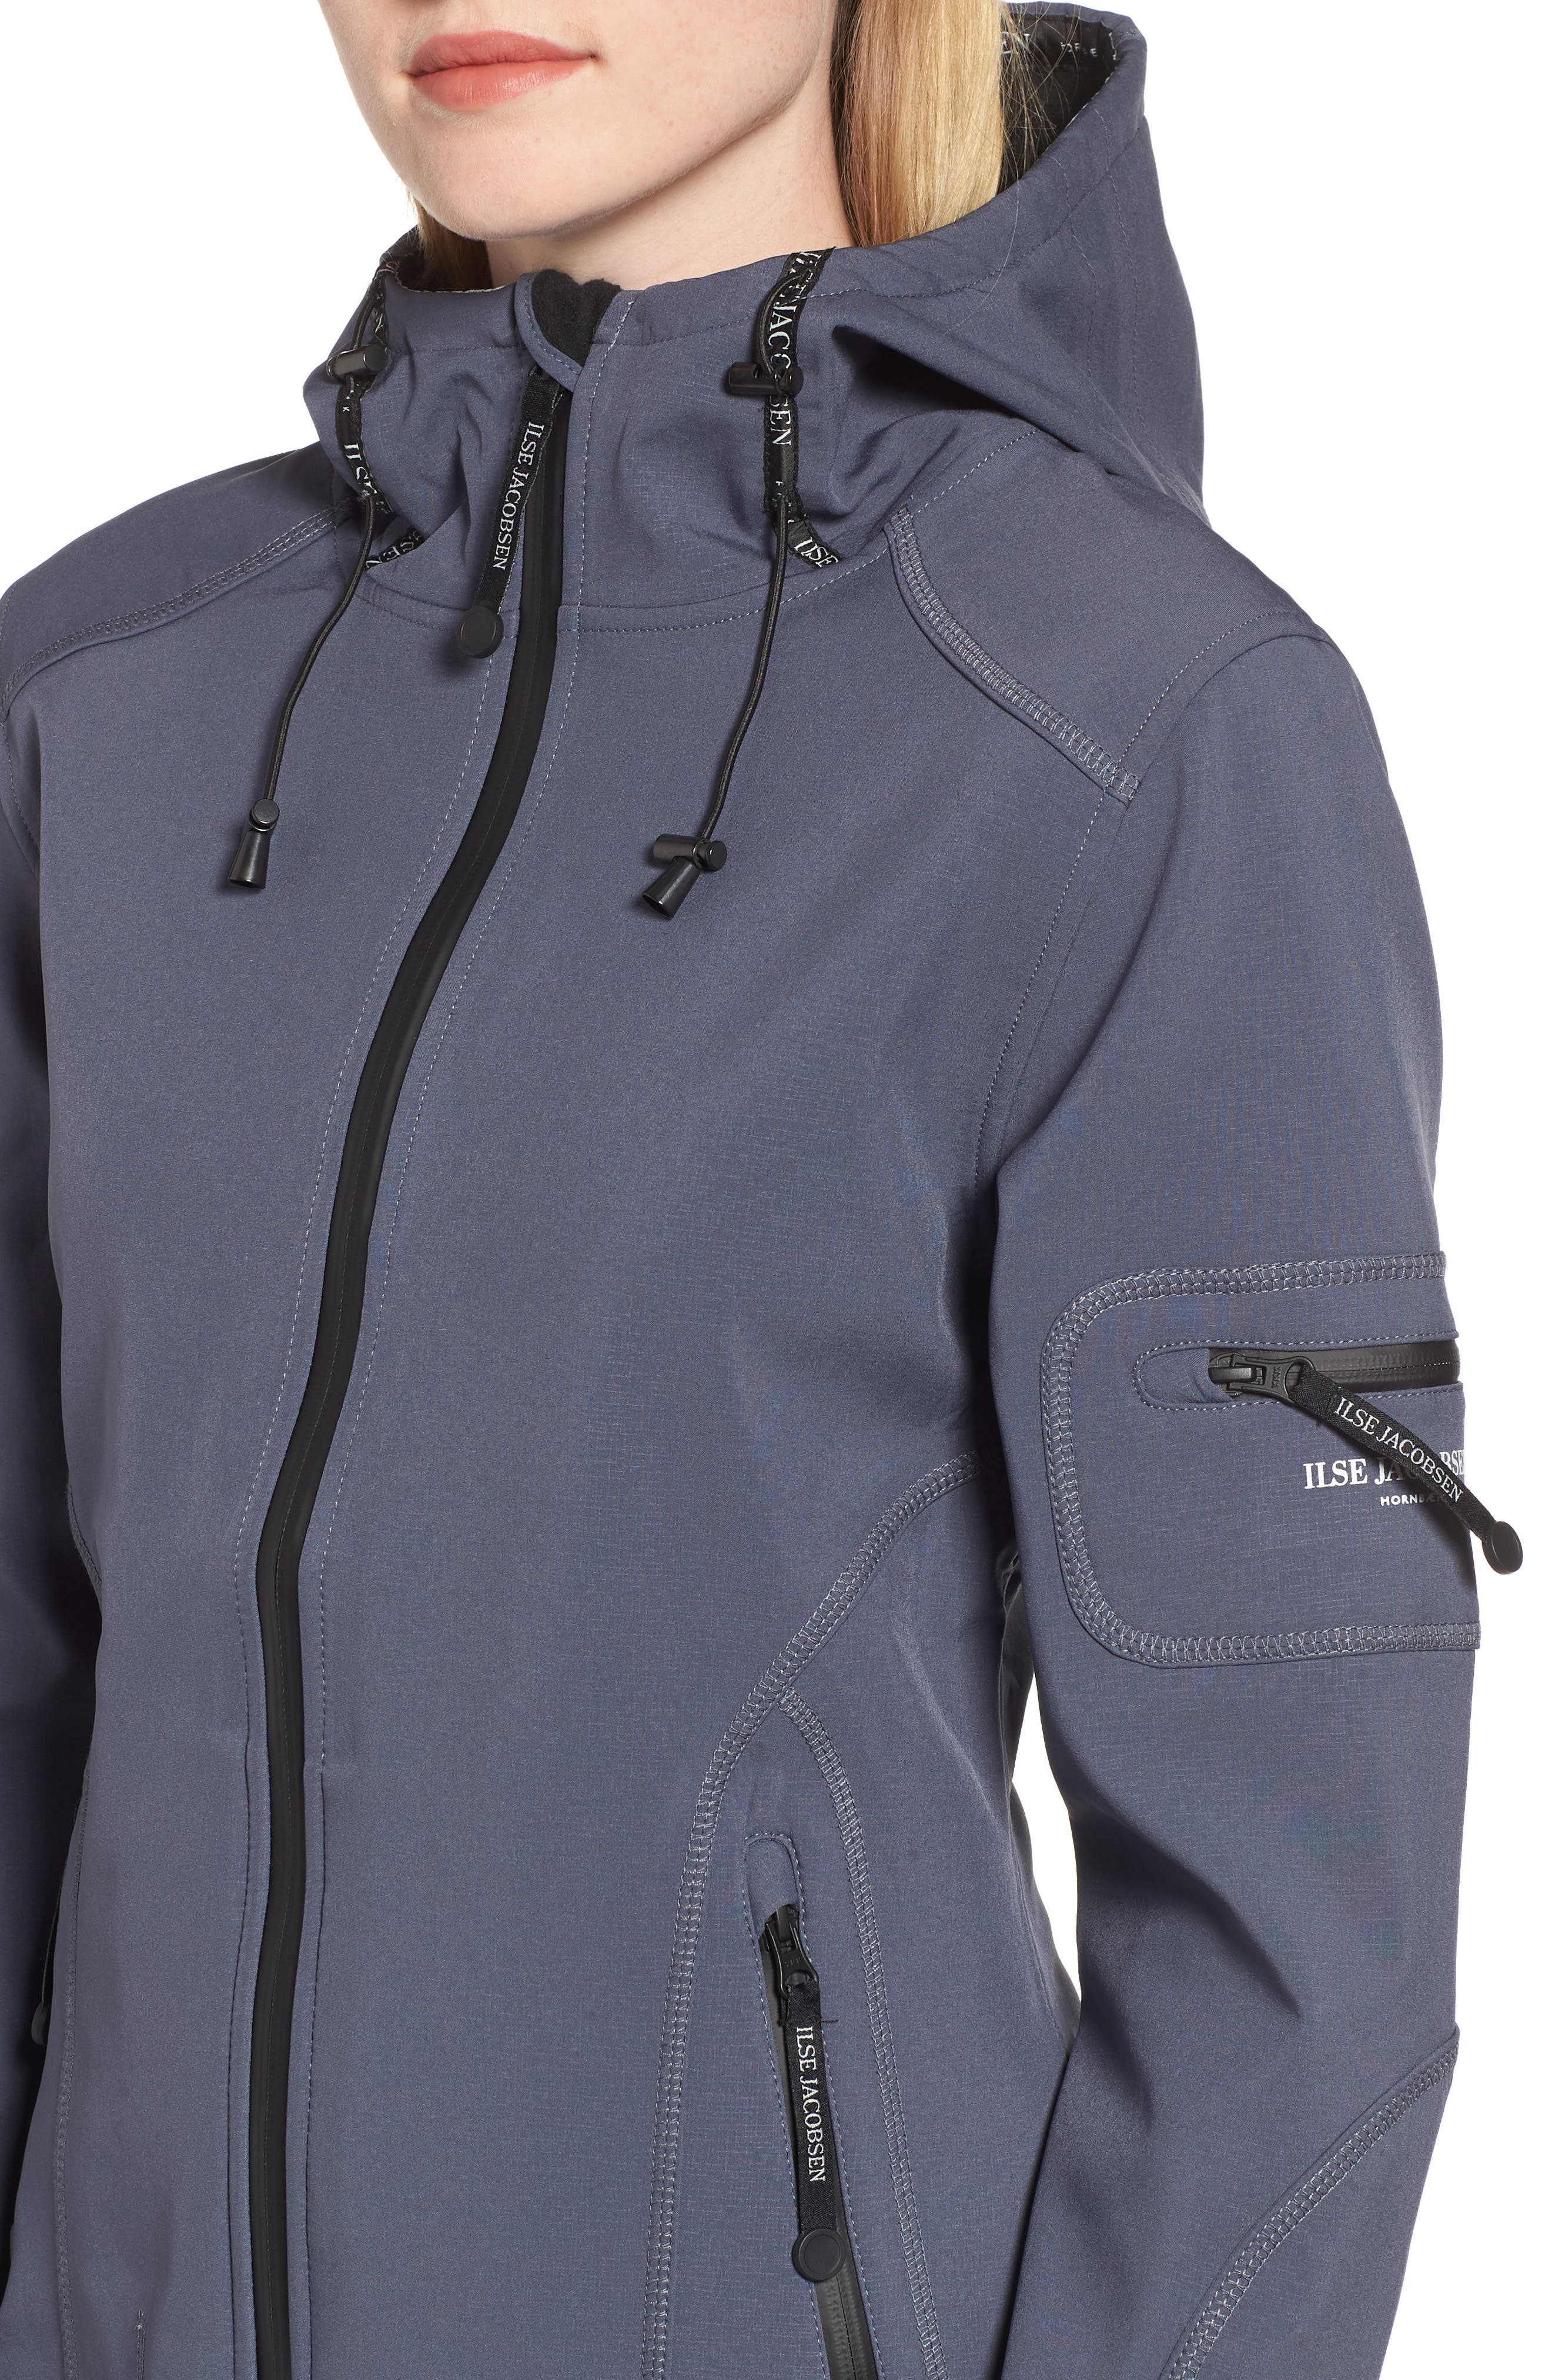 Rain 7 Hooded Water Resistant Coat,                             Alternate thumbnail 4, color,                             BLUE GRAYNESS